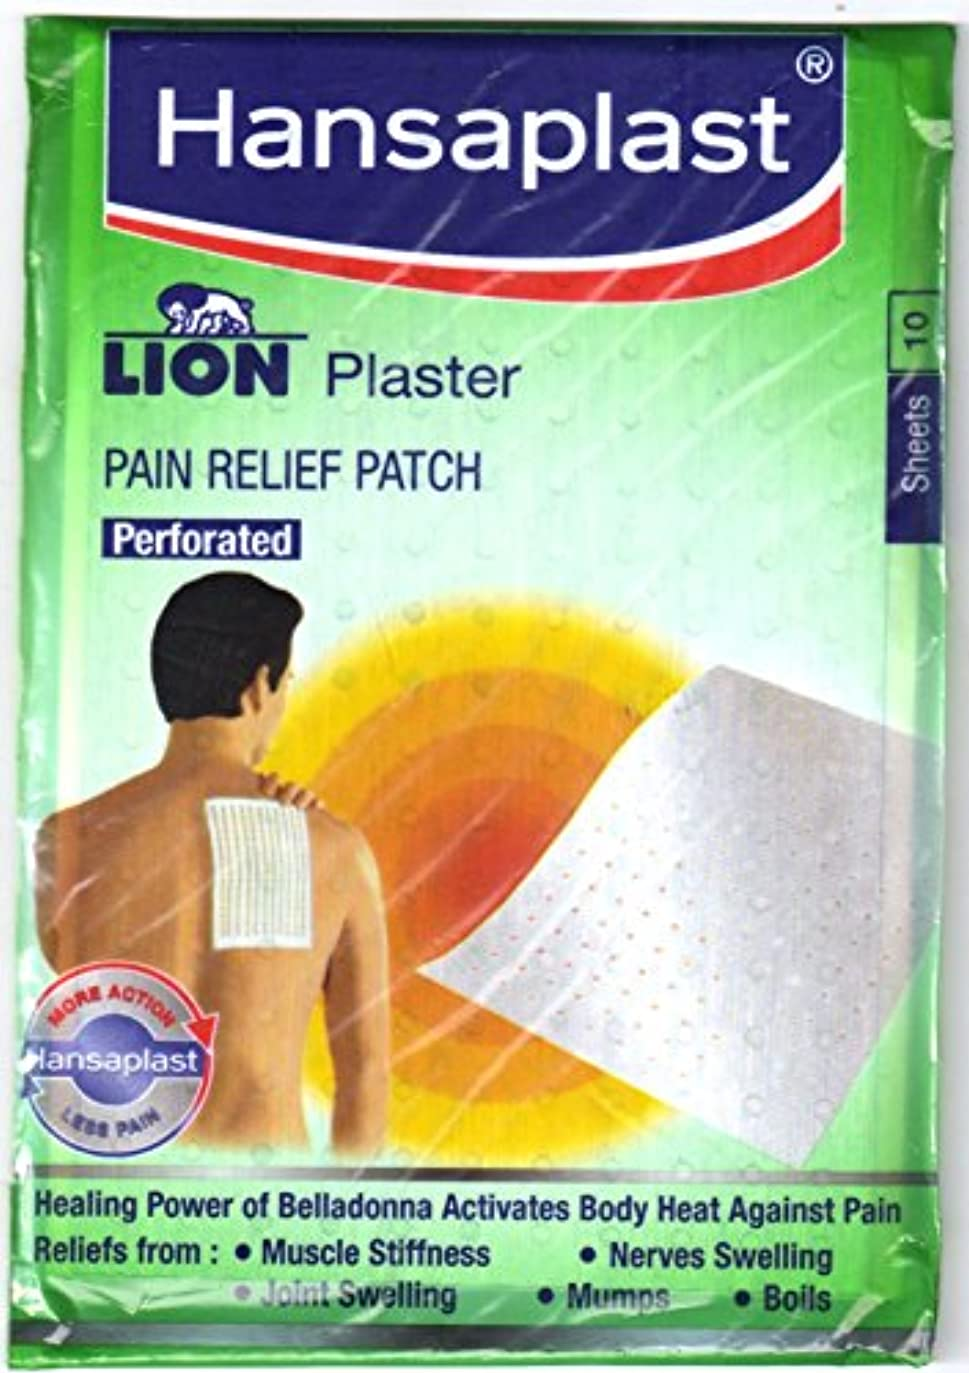 トレース軍団温室Hansaplast Lion plaster (Belladonna) 10 pack of 100 Sheets Pain Relief Patch